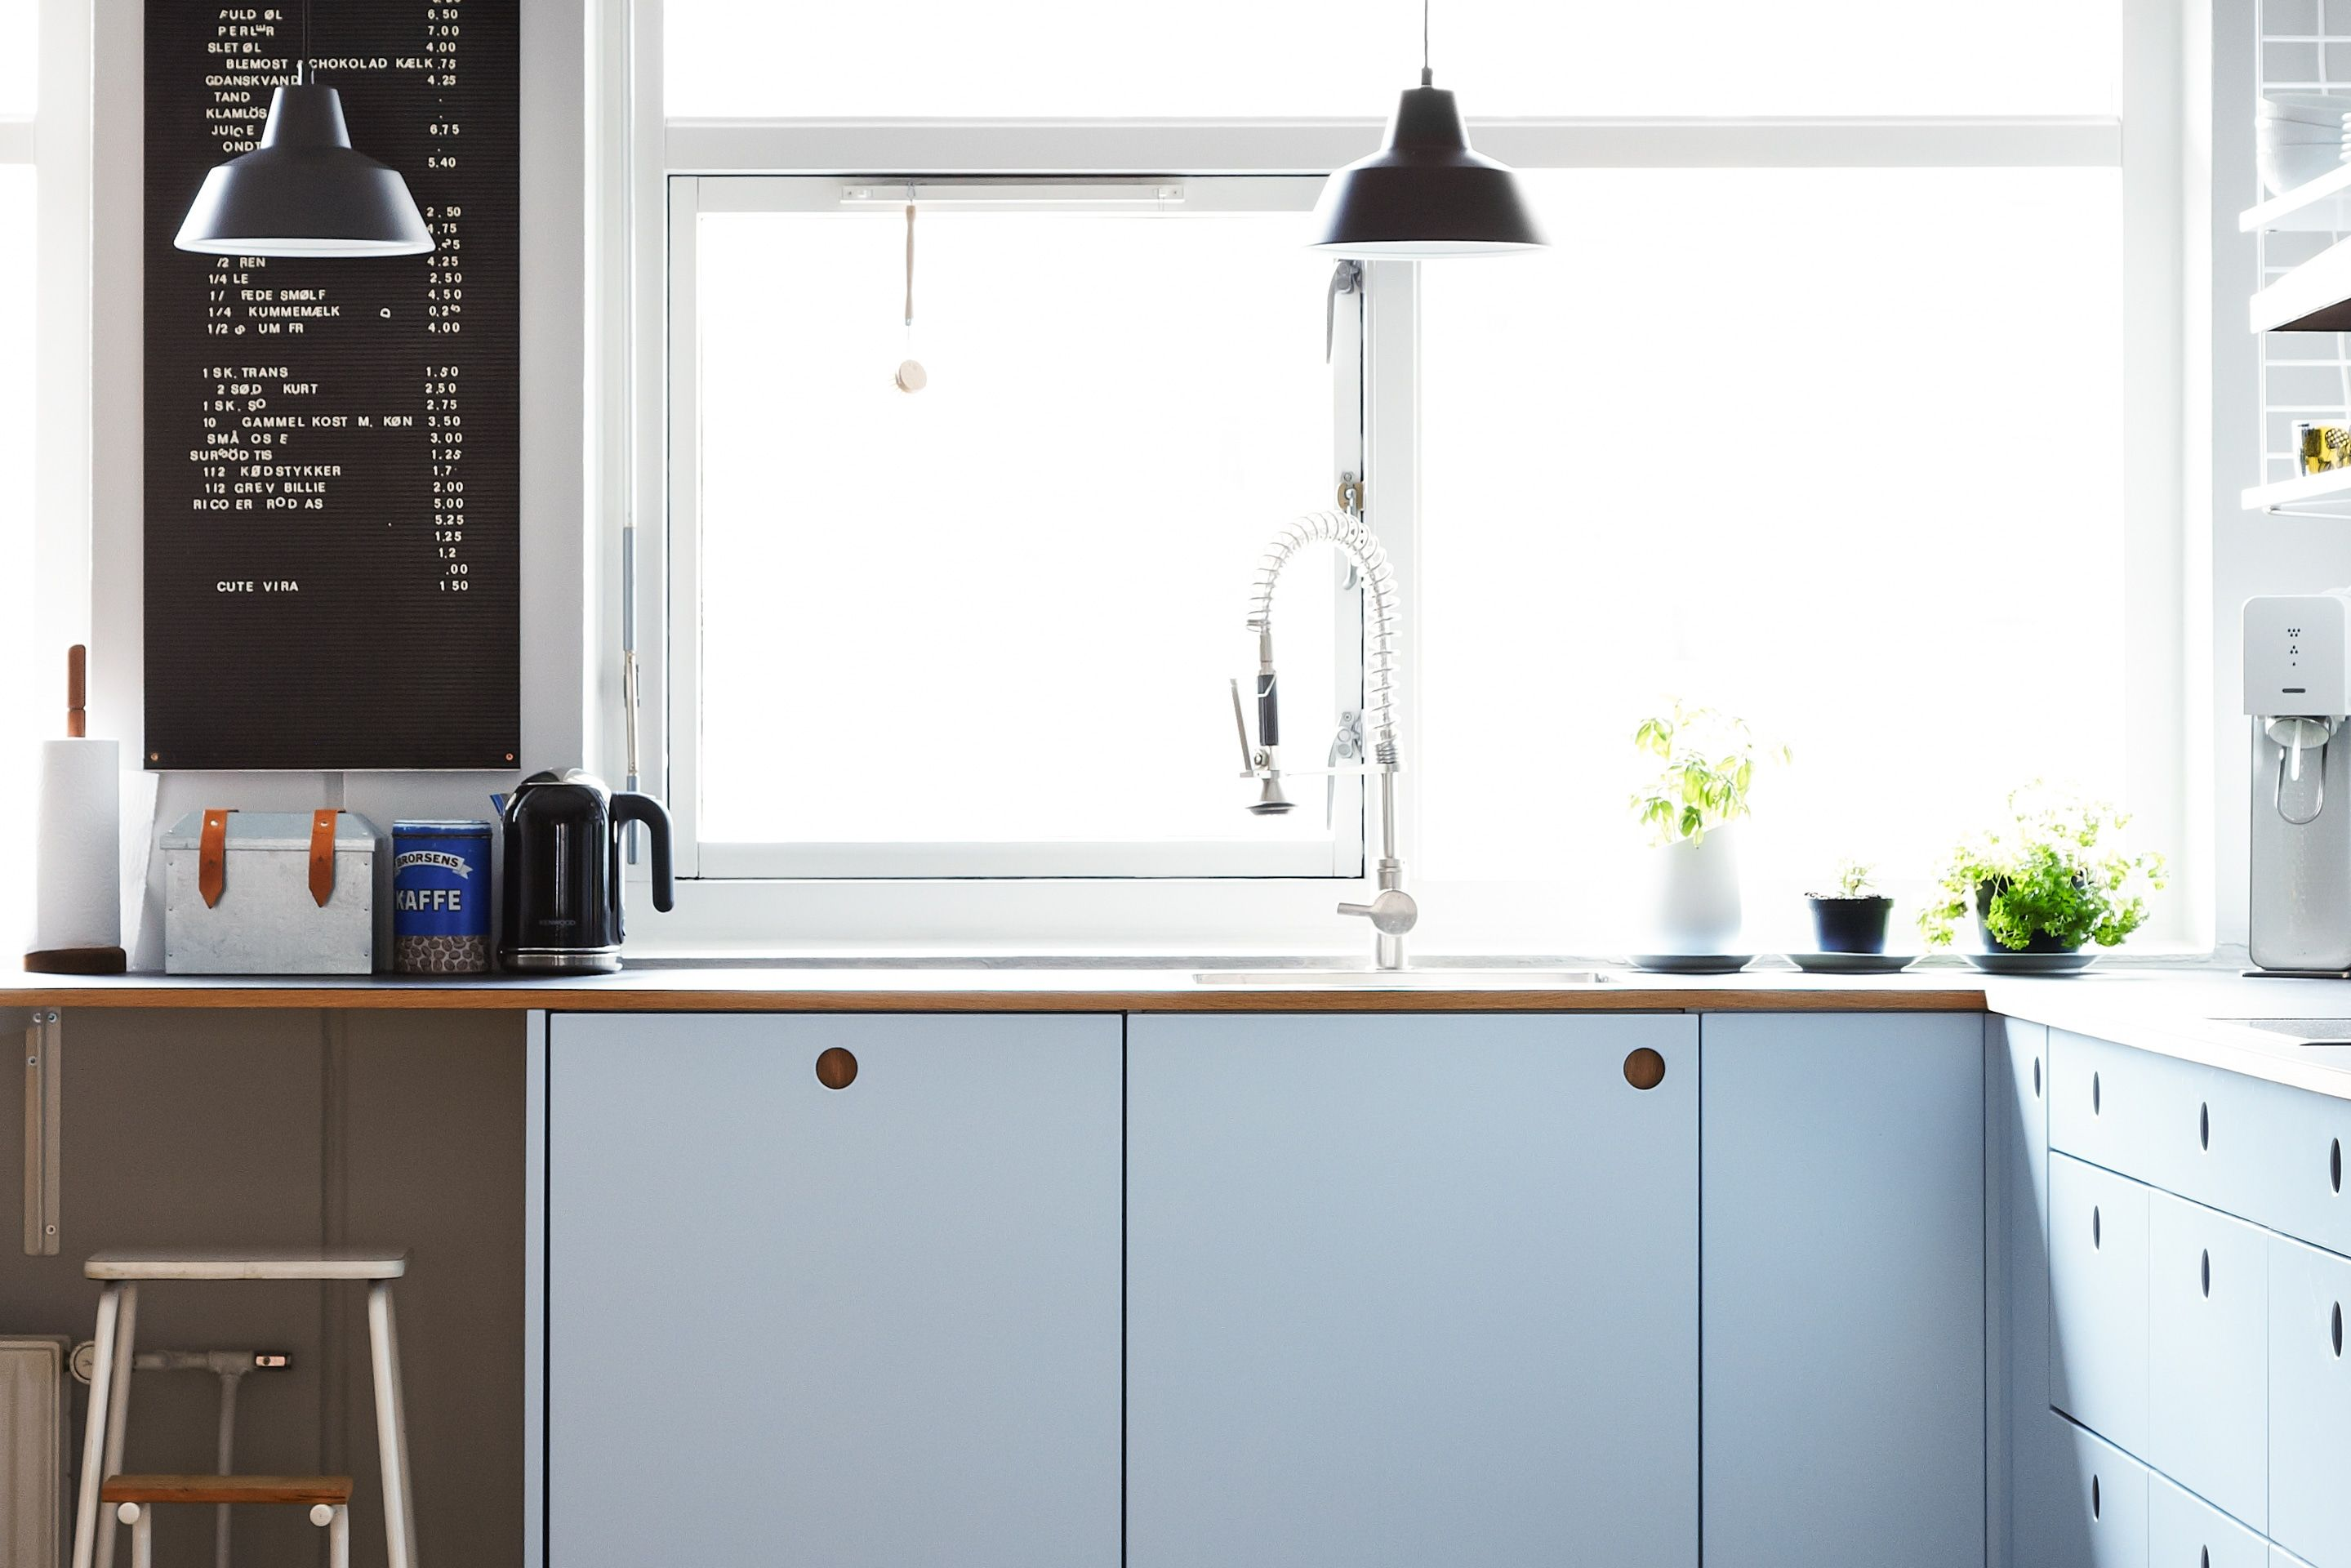 Inspiration Nordic Style With Eclectic Elements Kitchen Interior Kitchen Design Kitchen Cabinet Trends